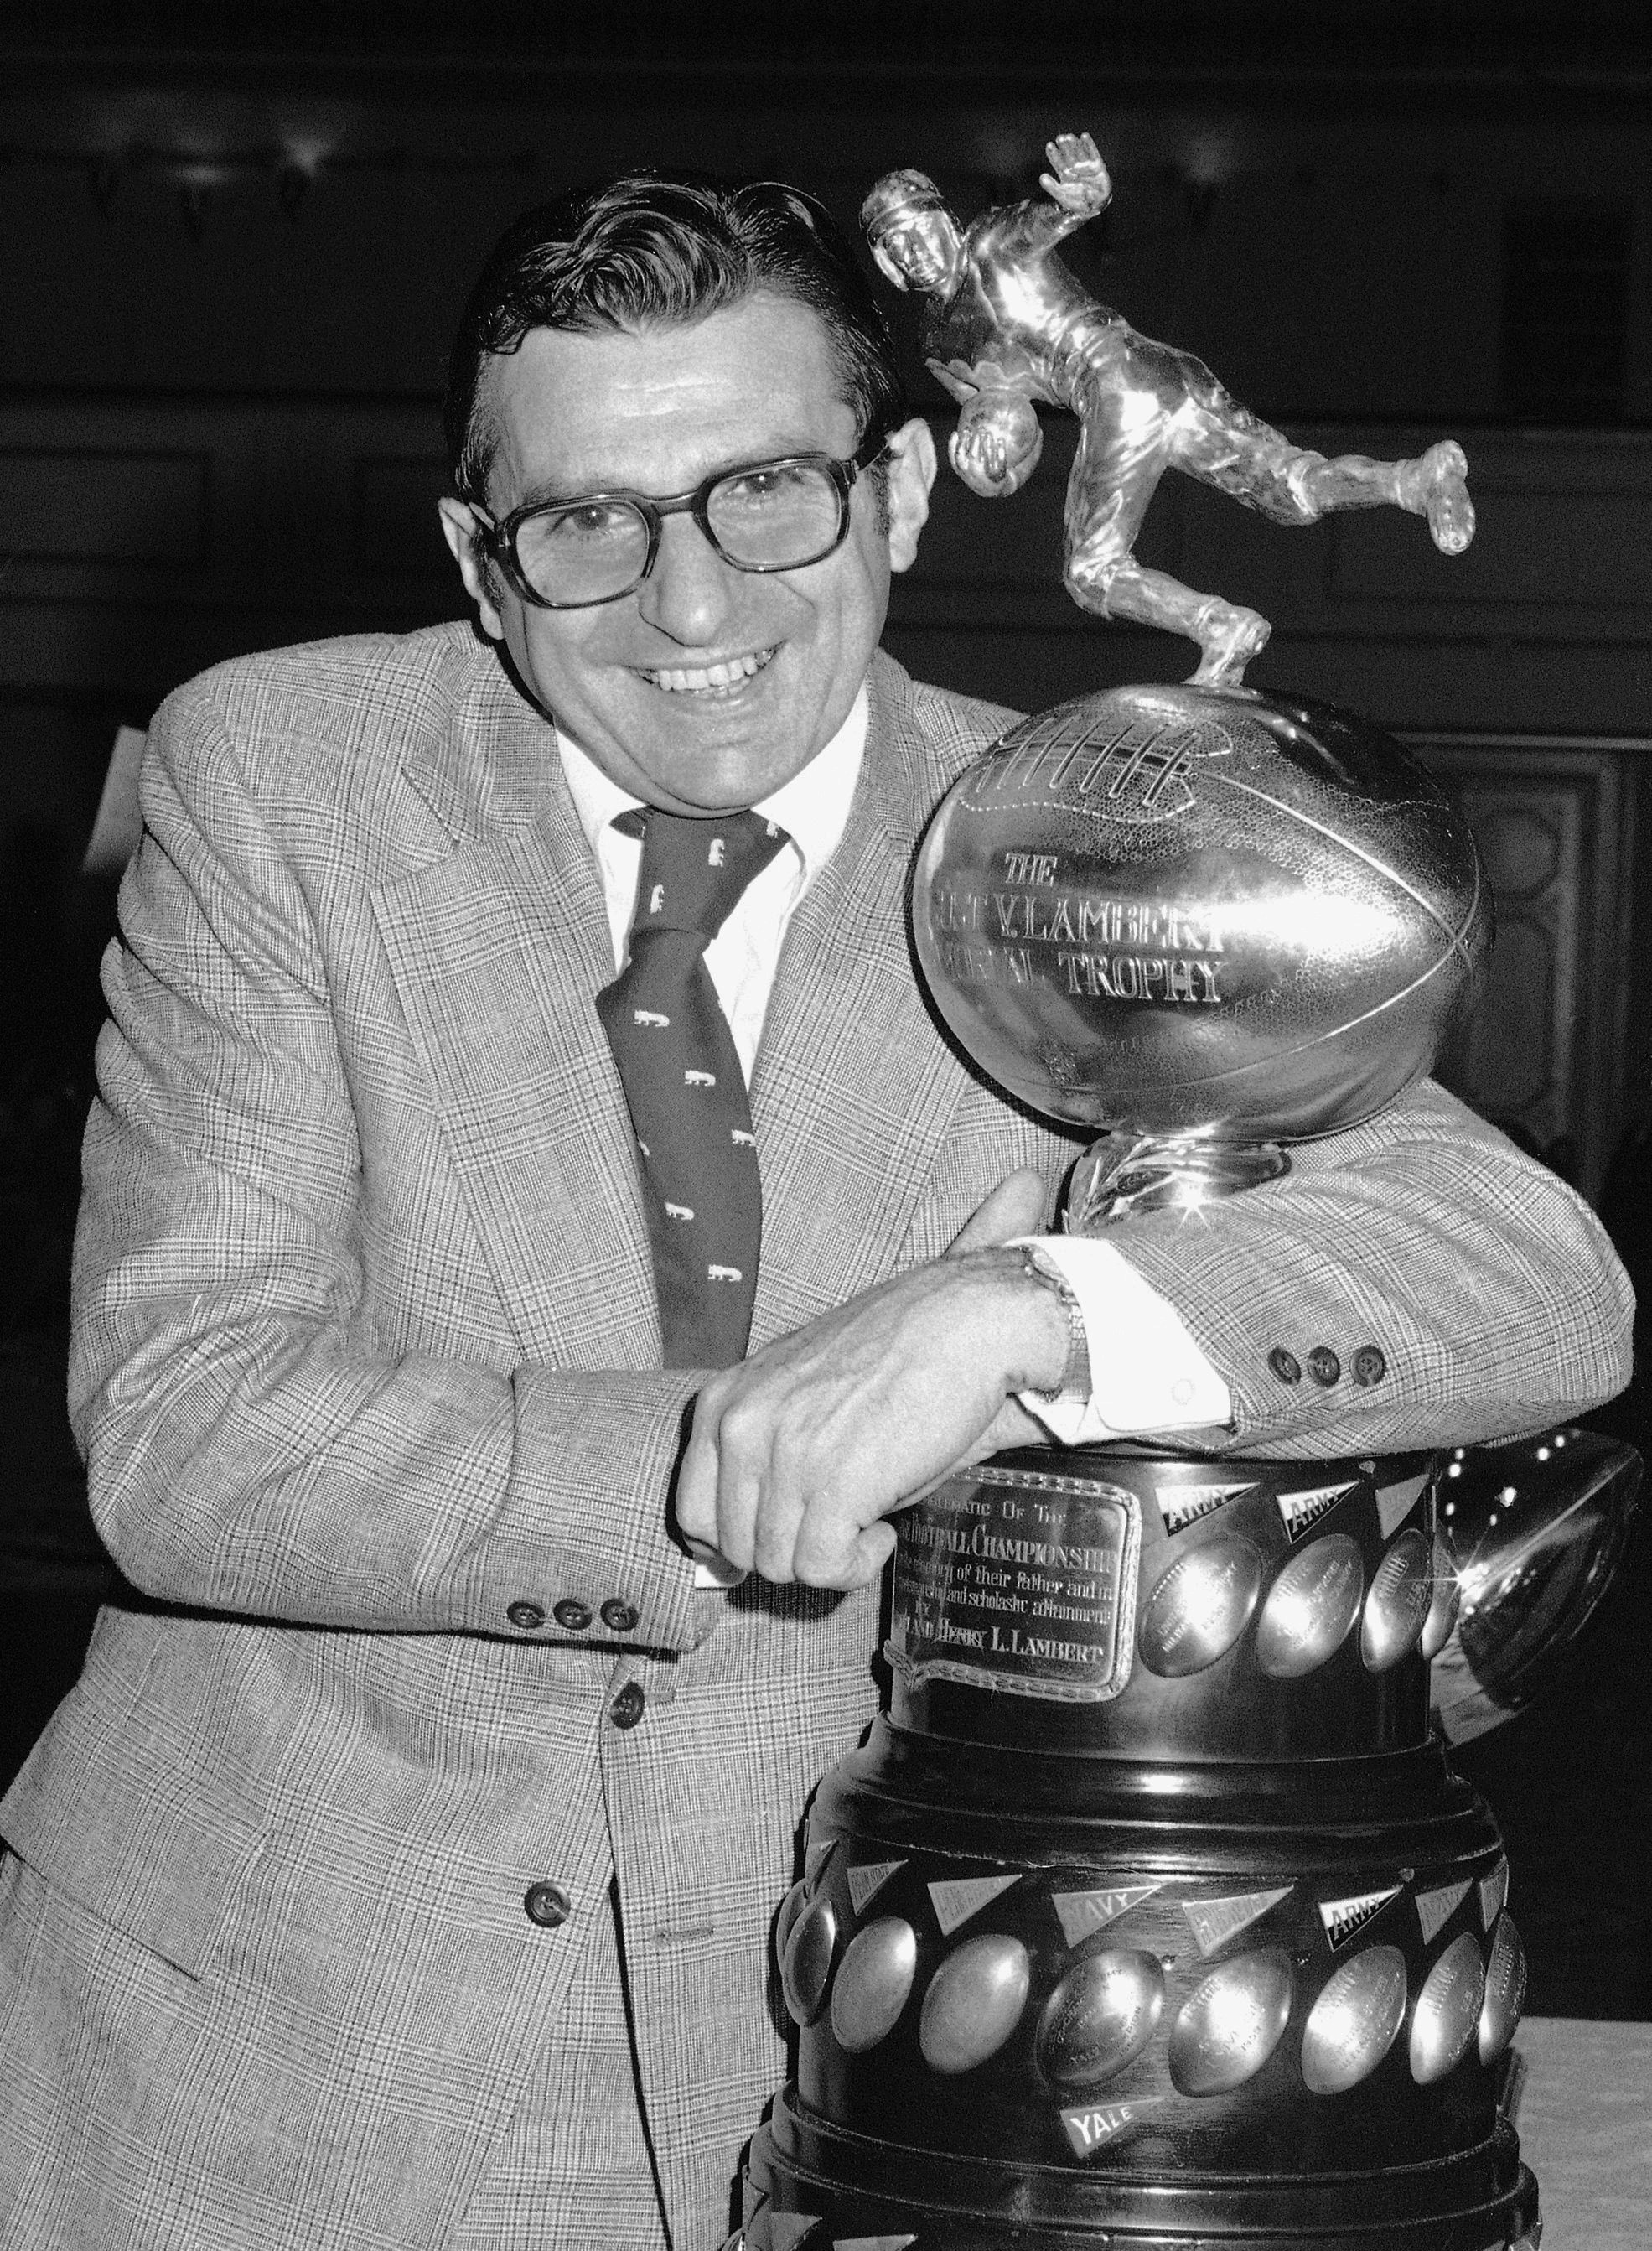 FILE - In this Dec. 6, 1973, file photo, Joe Paterno, head coach of the Penn State football team, clutches the Lambert Trophy in New York, after it was awarded to his team as emblematic of collegiate grid supremacy in the East. Legends tend to linger in c